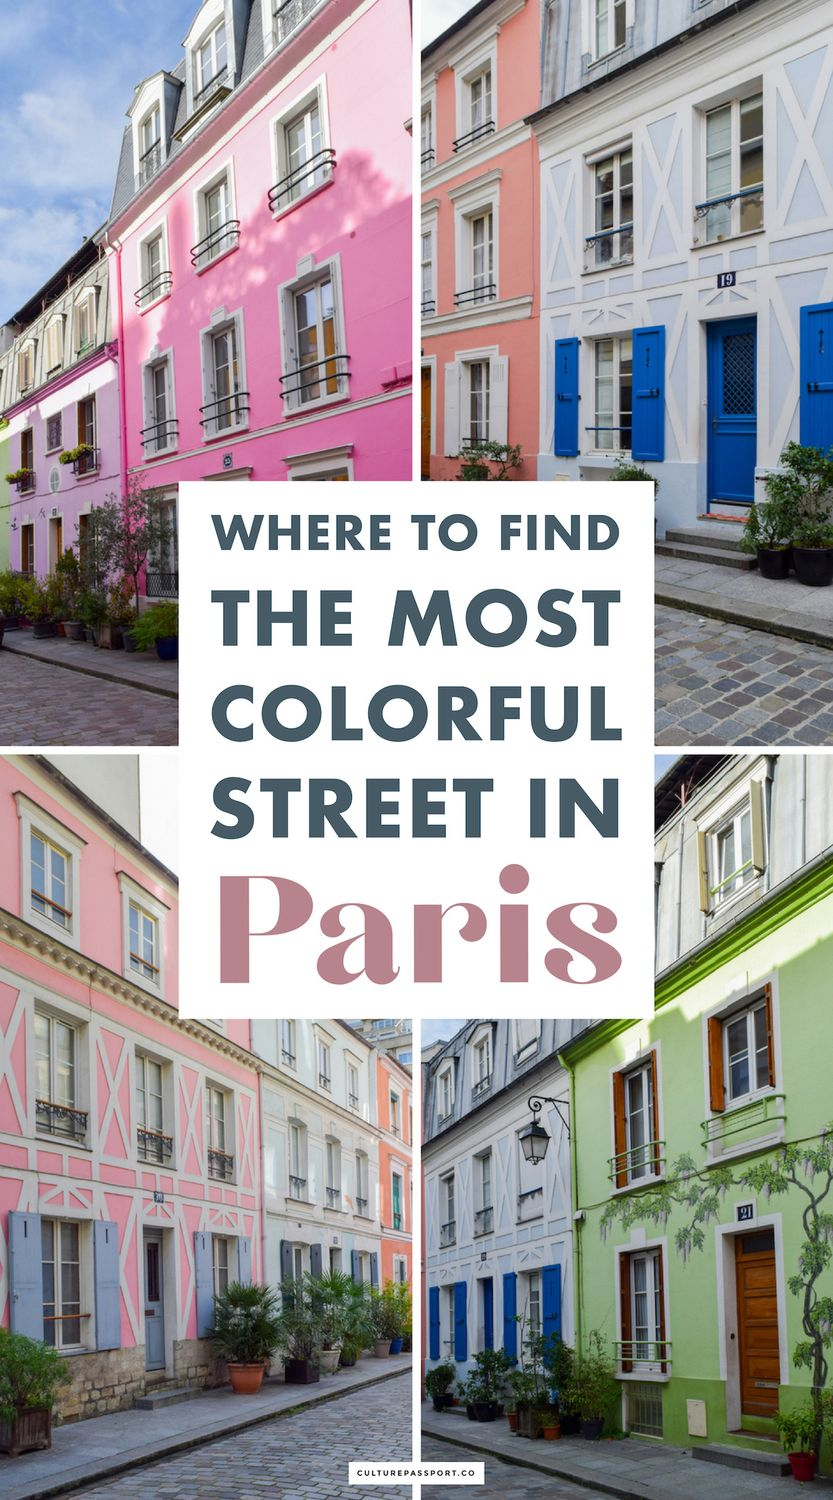 Where to Find the Most Colorful Street in Paris